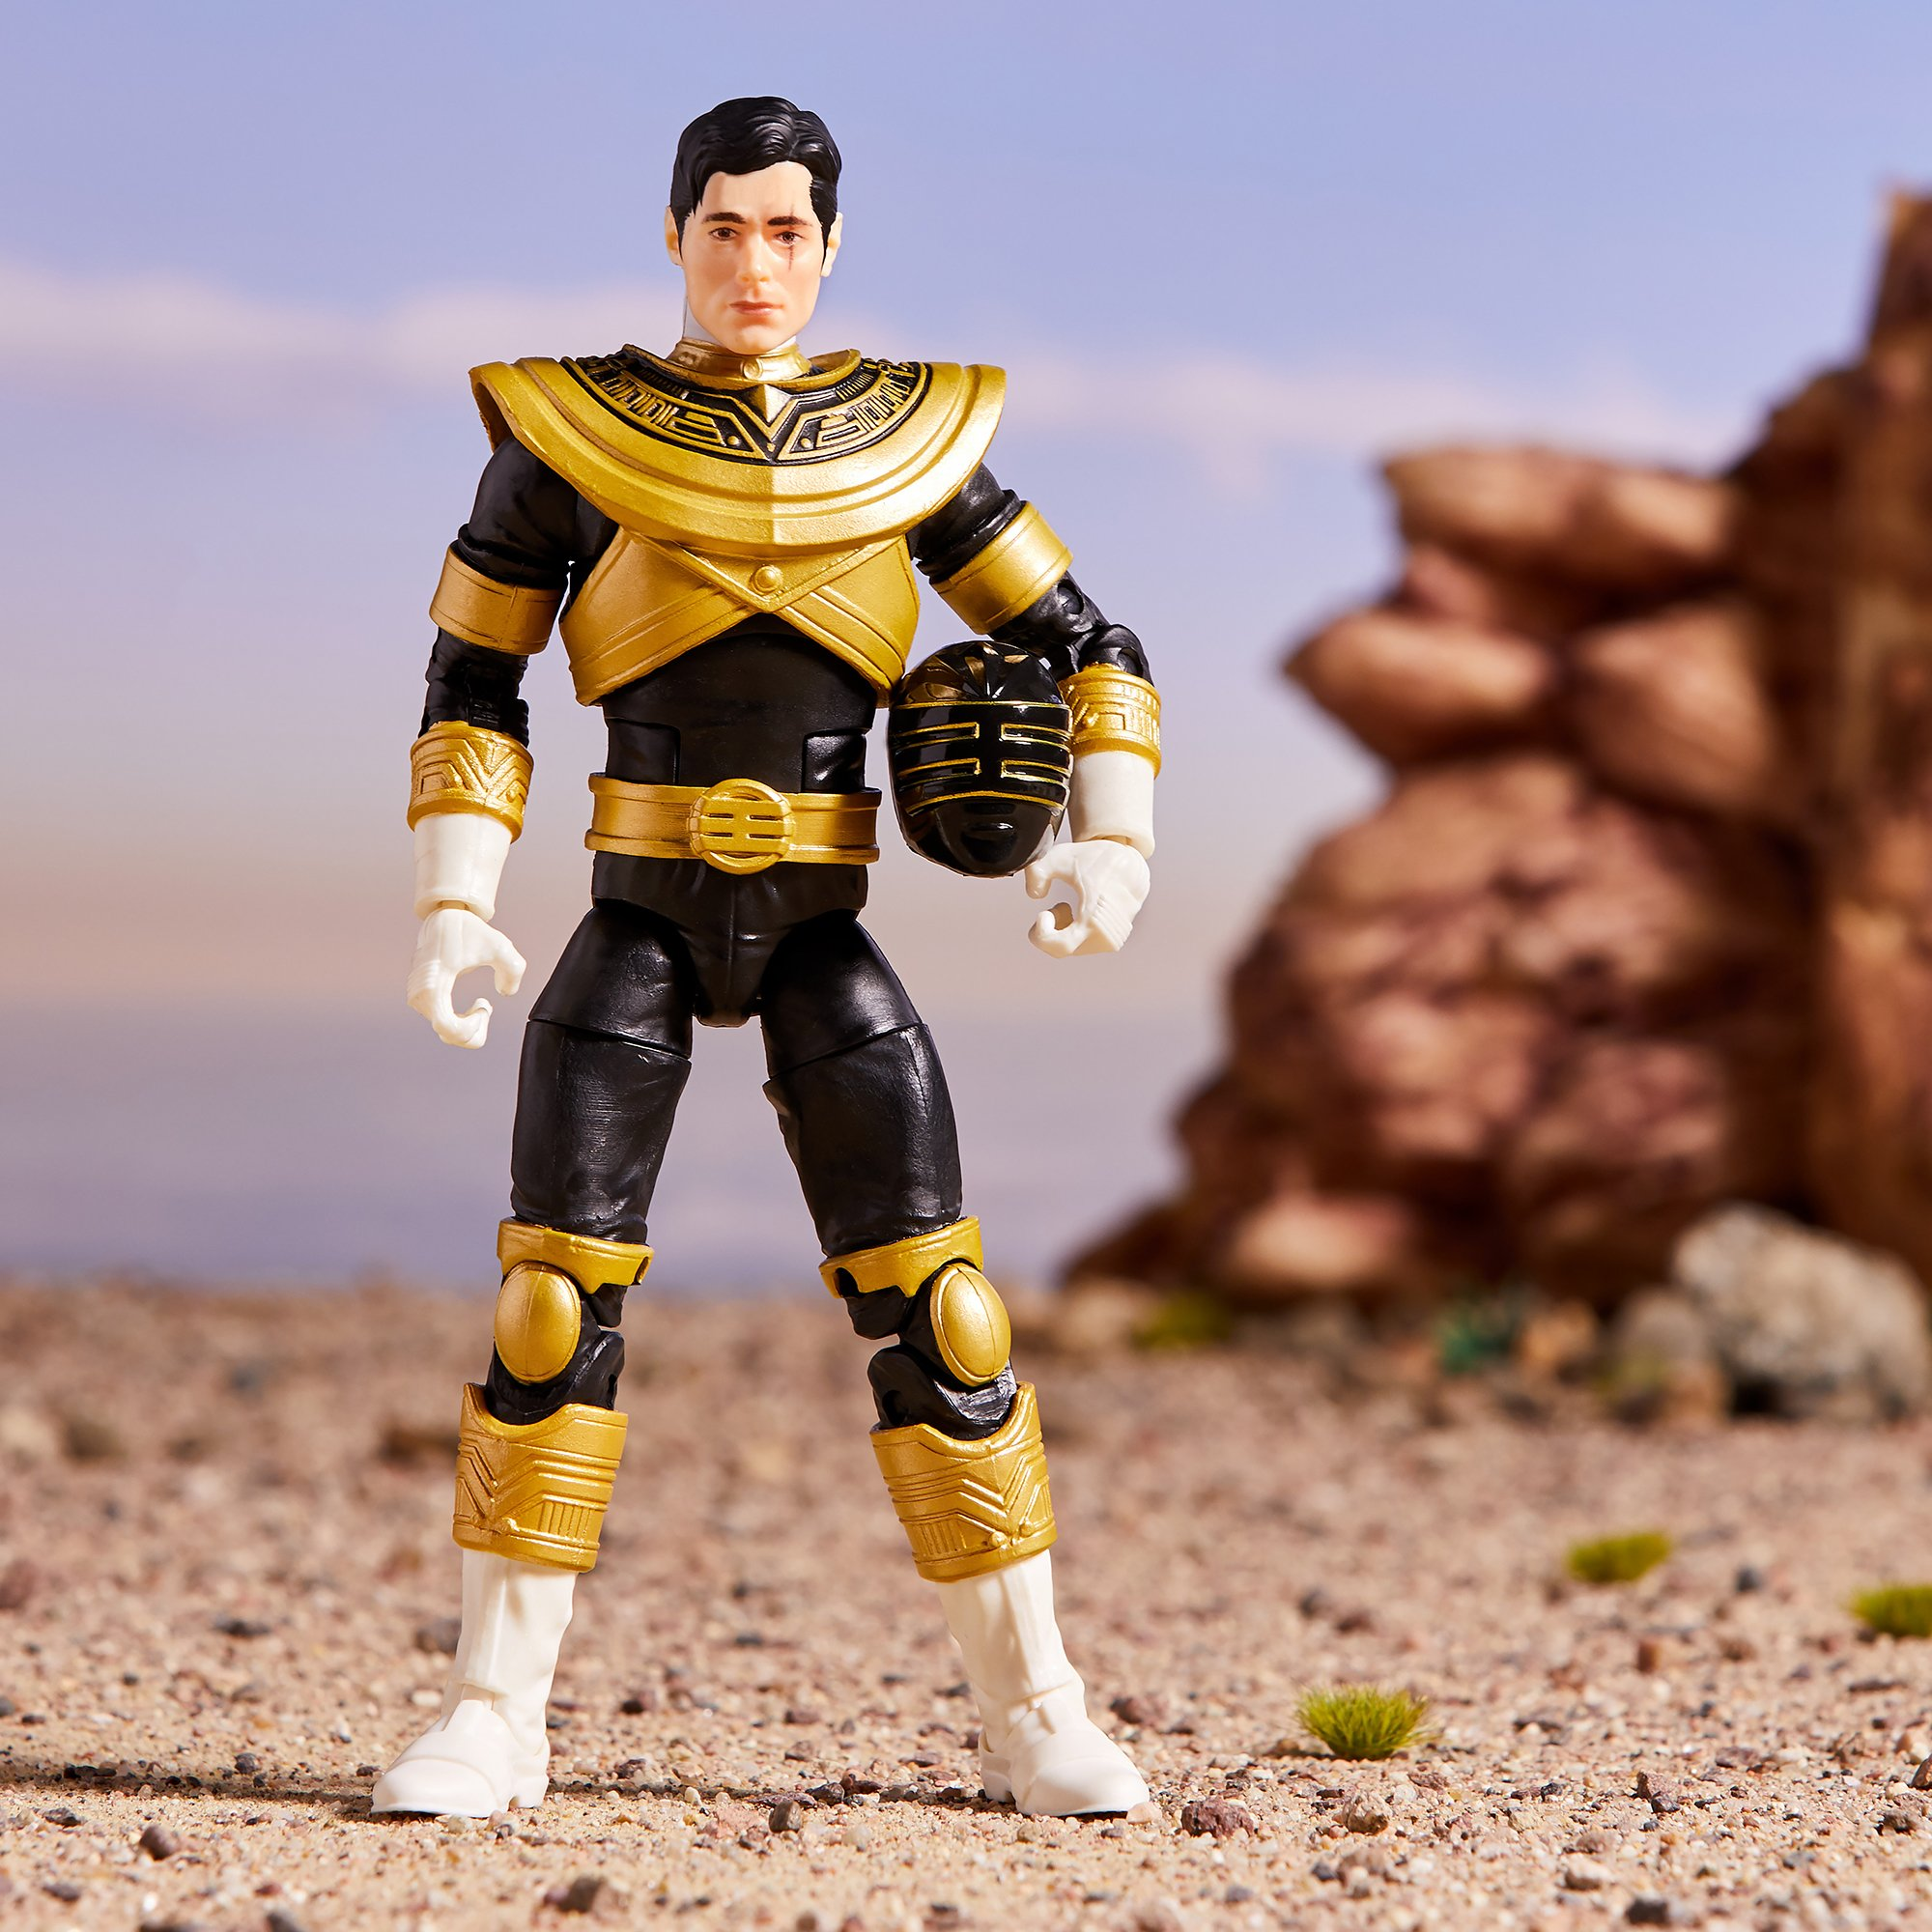 Power Rangers Lightning Collection Zeo Gold Ranger (Trey of Triforia) Official Images